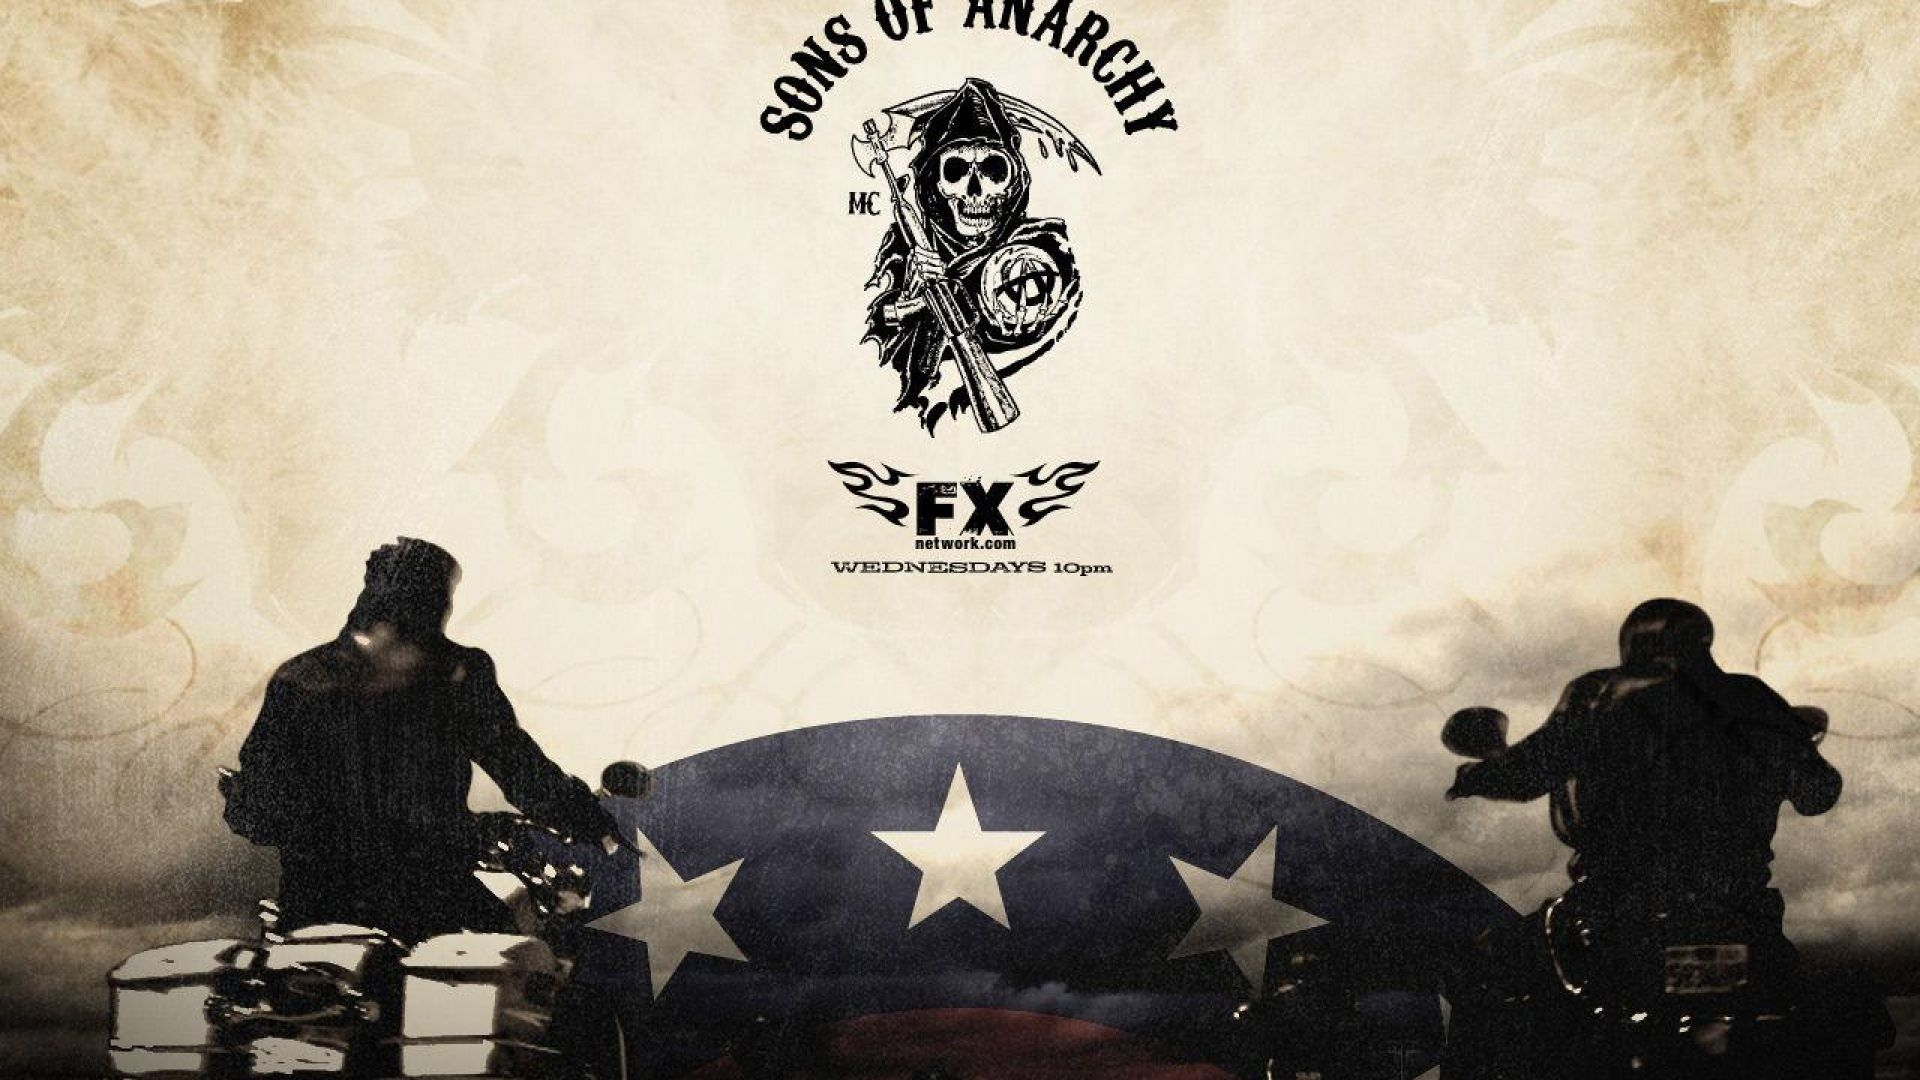 Sons Of Anarchy Wallpaper 17 Wallpapersbq